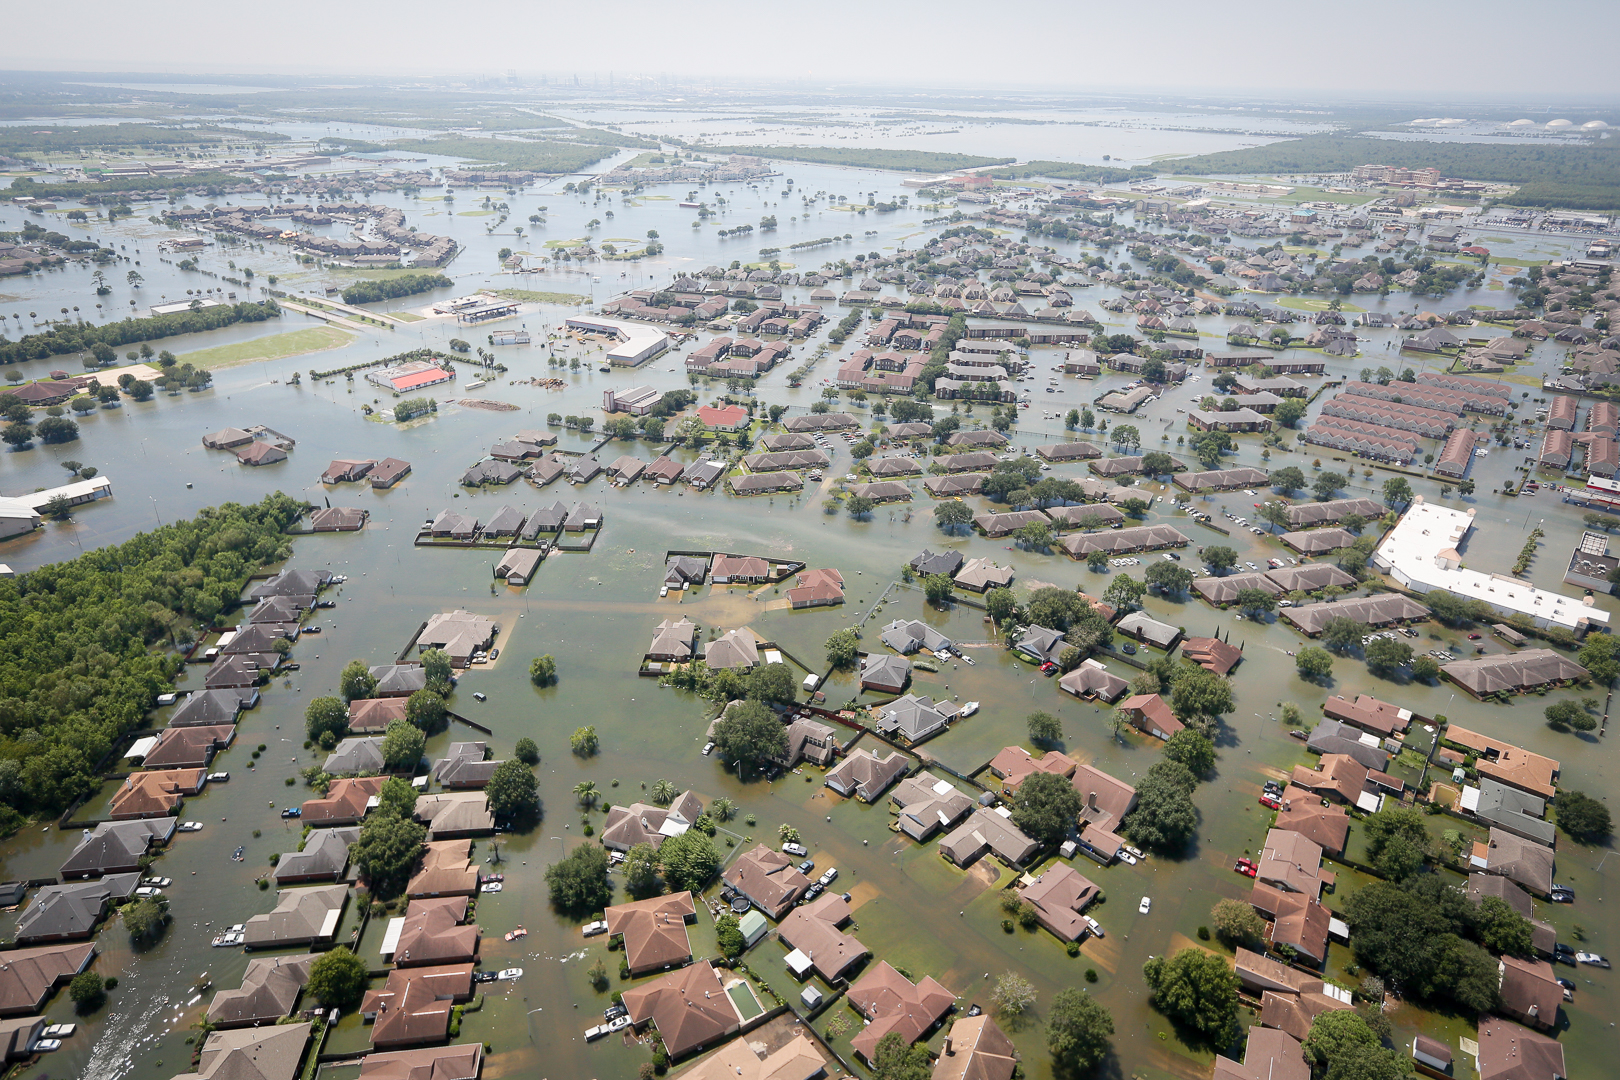 Harvey was the first of three monster storms to hit the United States in 2017.